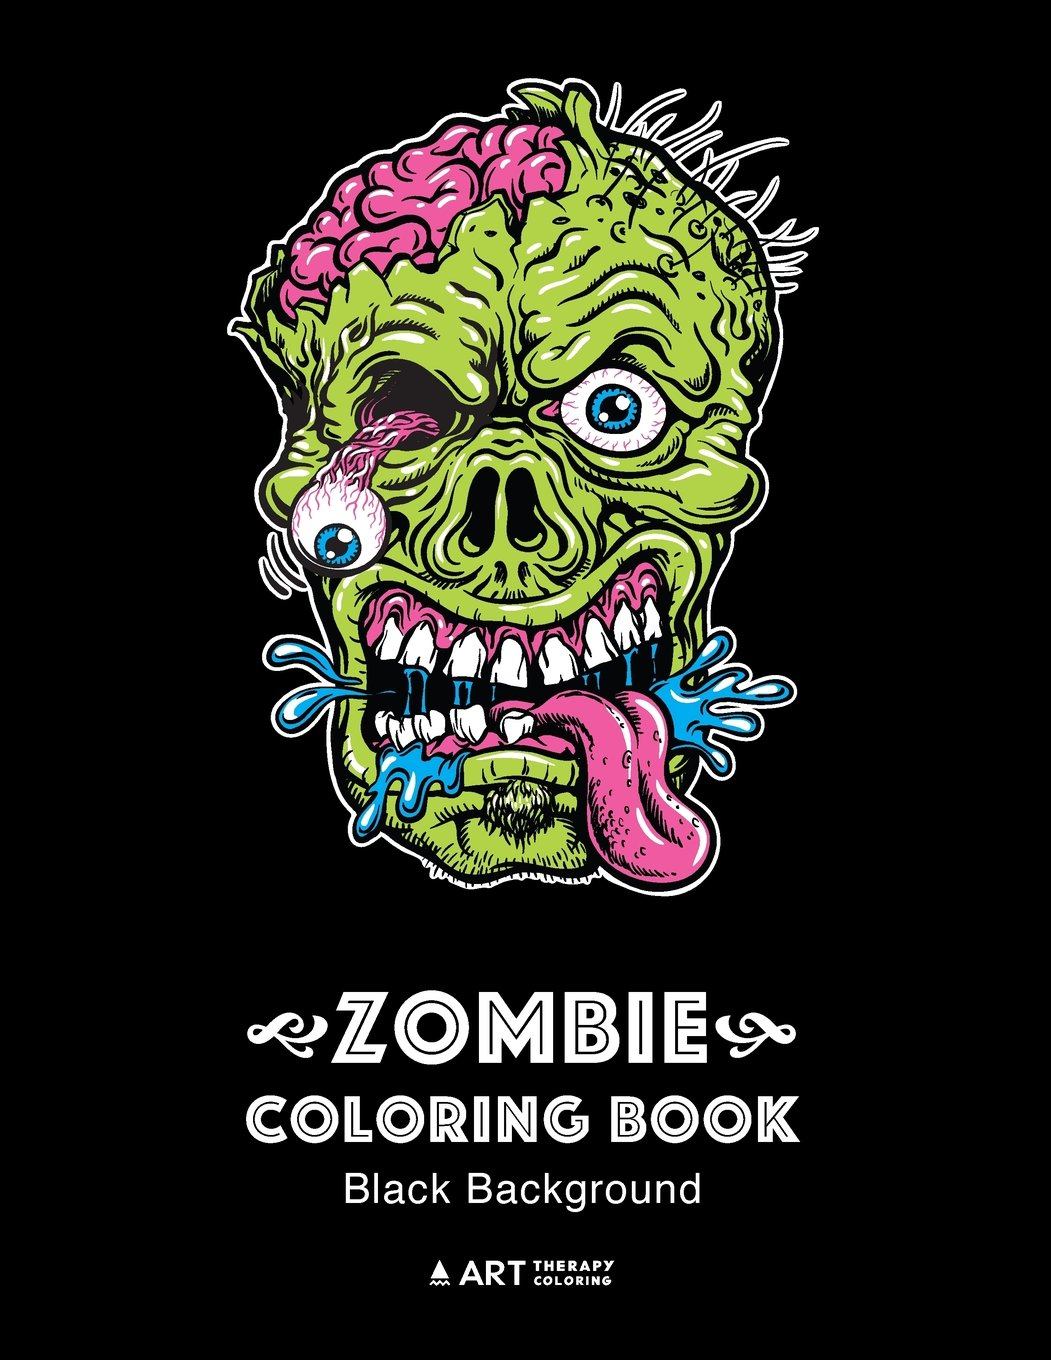 Amazon.com: Zombie Coloring Book: Black Background: Midnight Edition ...